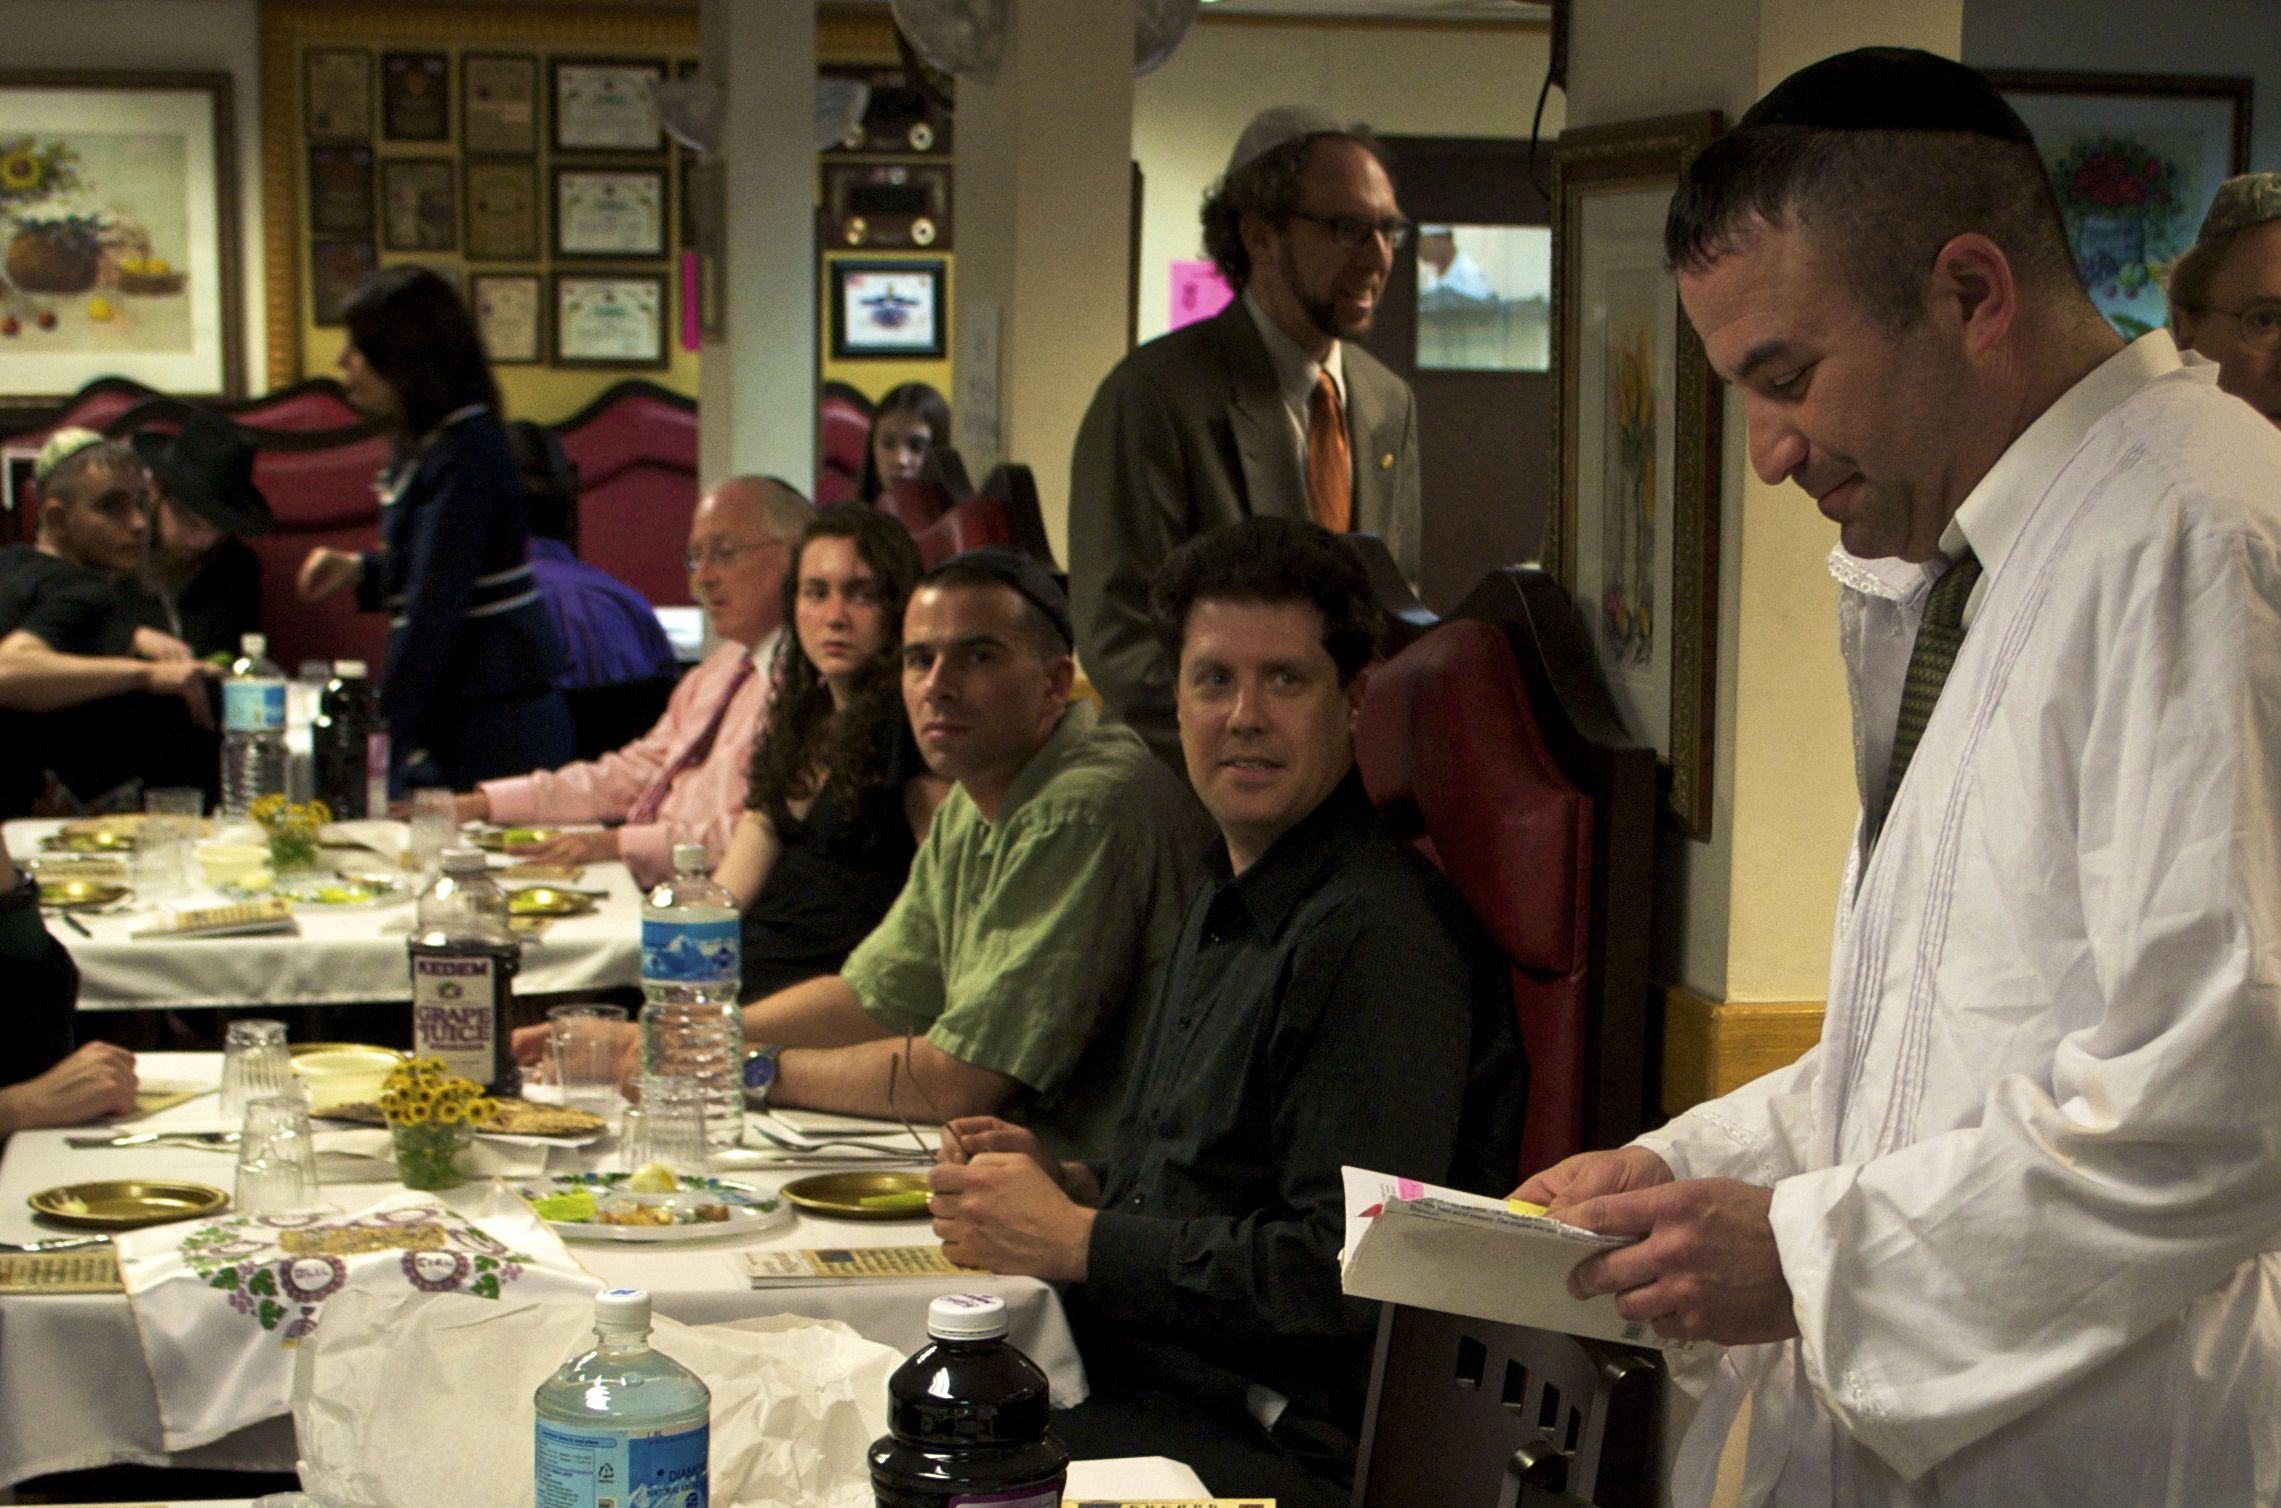 A Jewish man reads from the Haggadah during the Passover Seder.